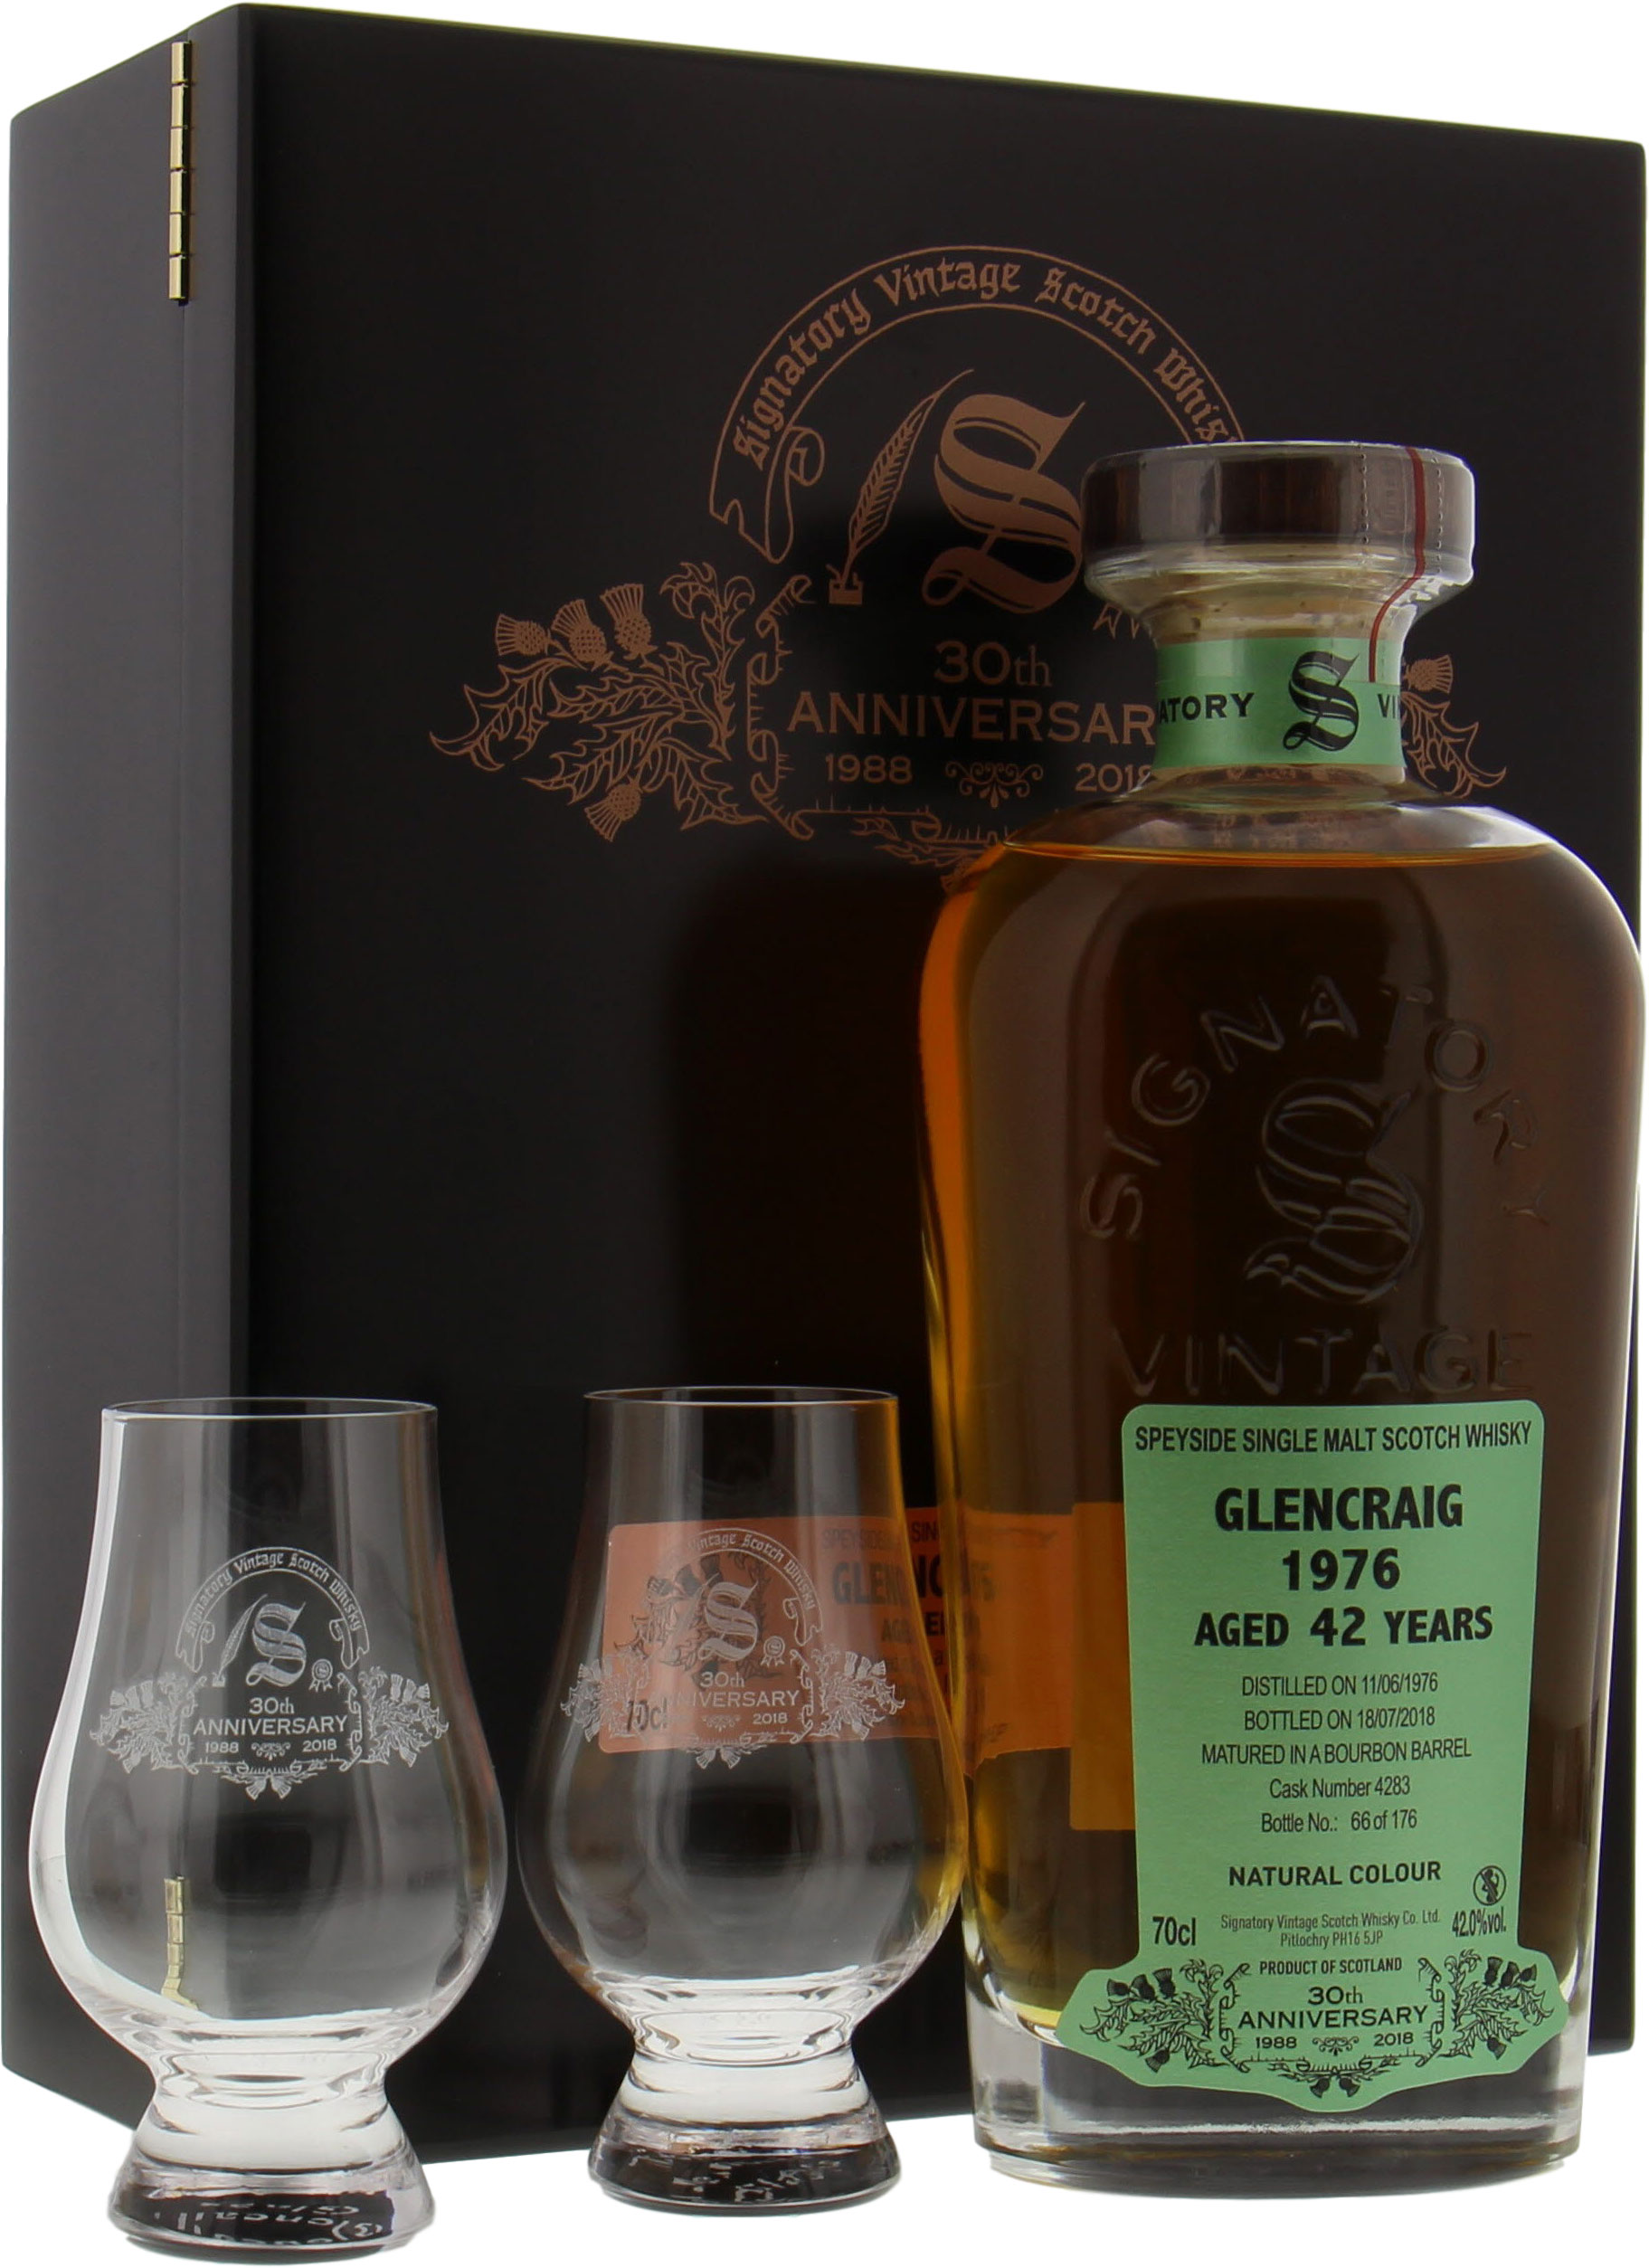 Glencraig - 42 Years Old Signatory 30th Anniversary Cask 4283 42% 1976